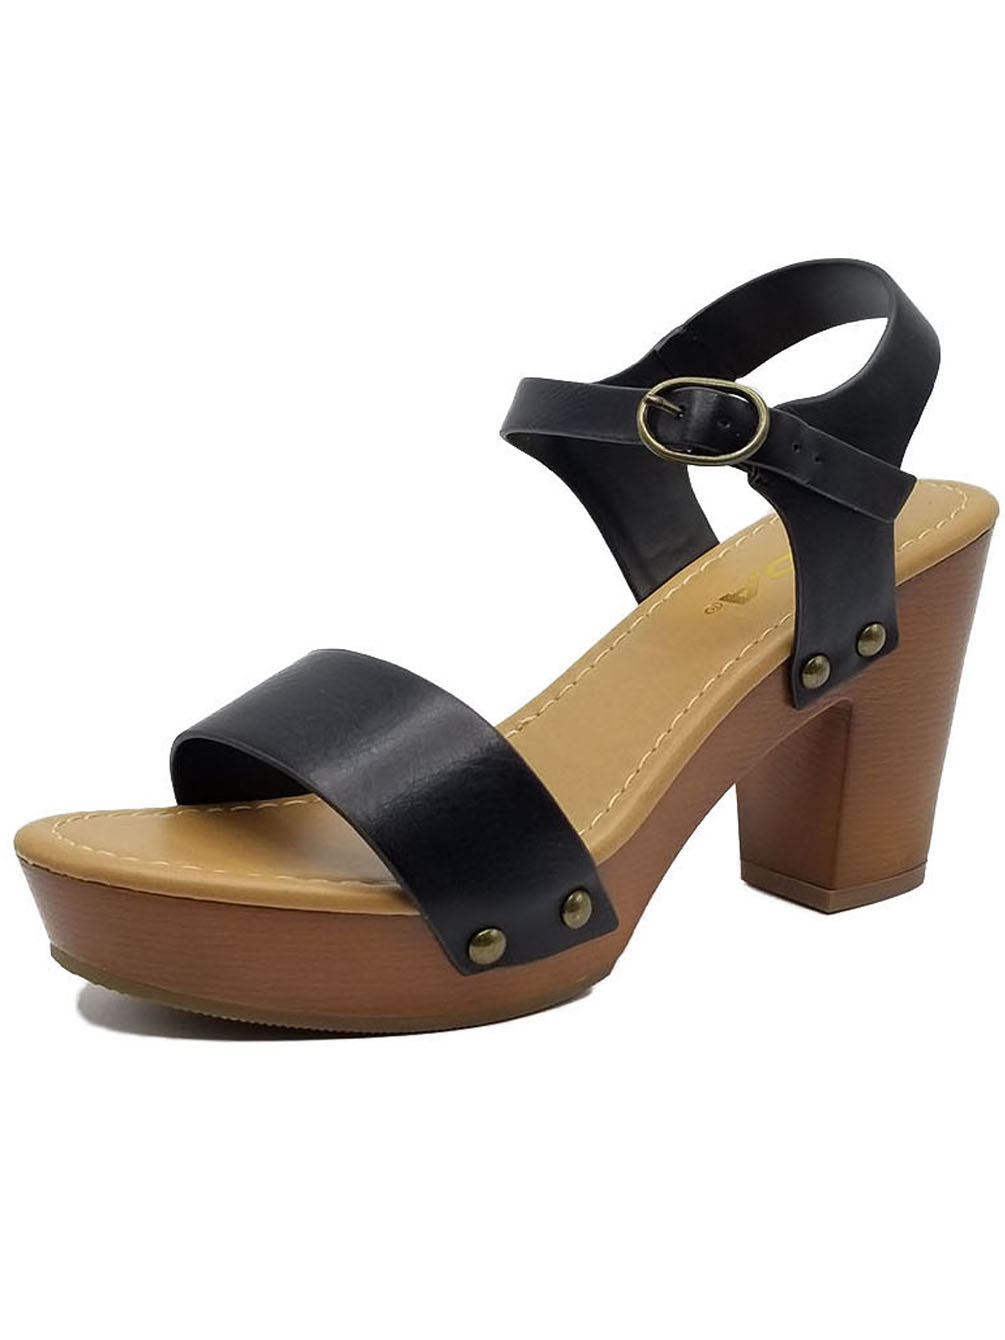 UHAVITCOM Kid Dress Sandals Buckled Ankle Strap Low Heels Refine-IIS